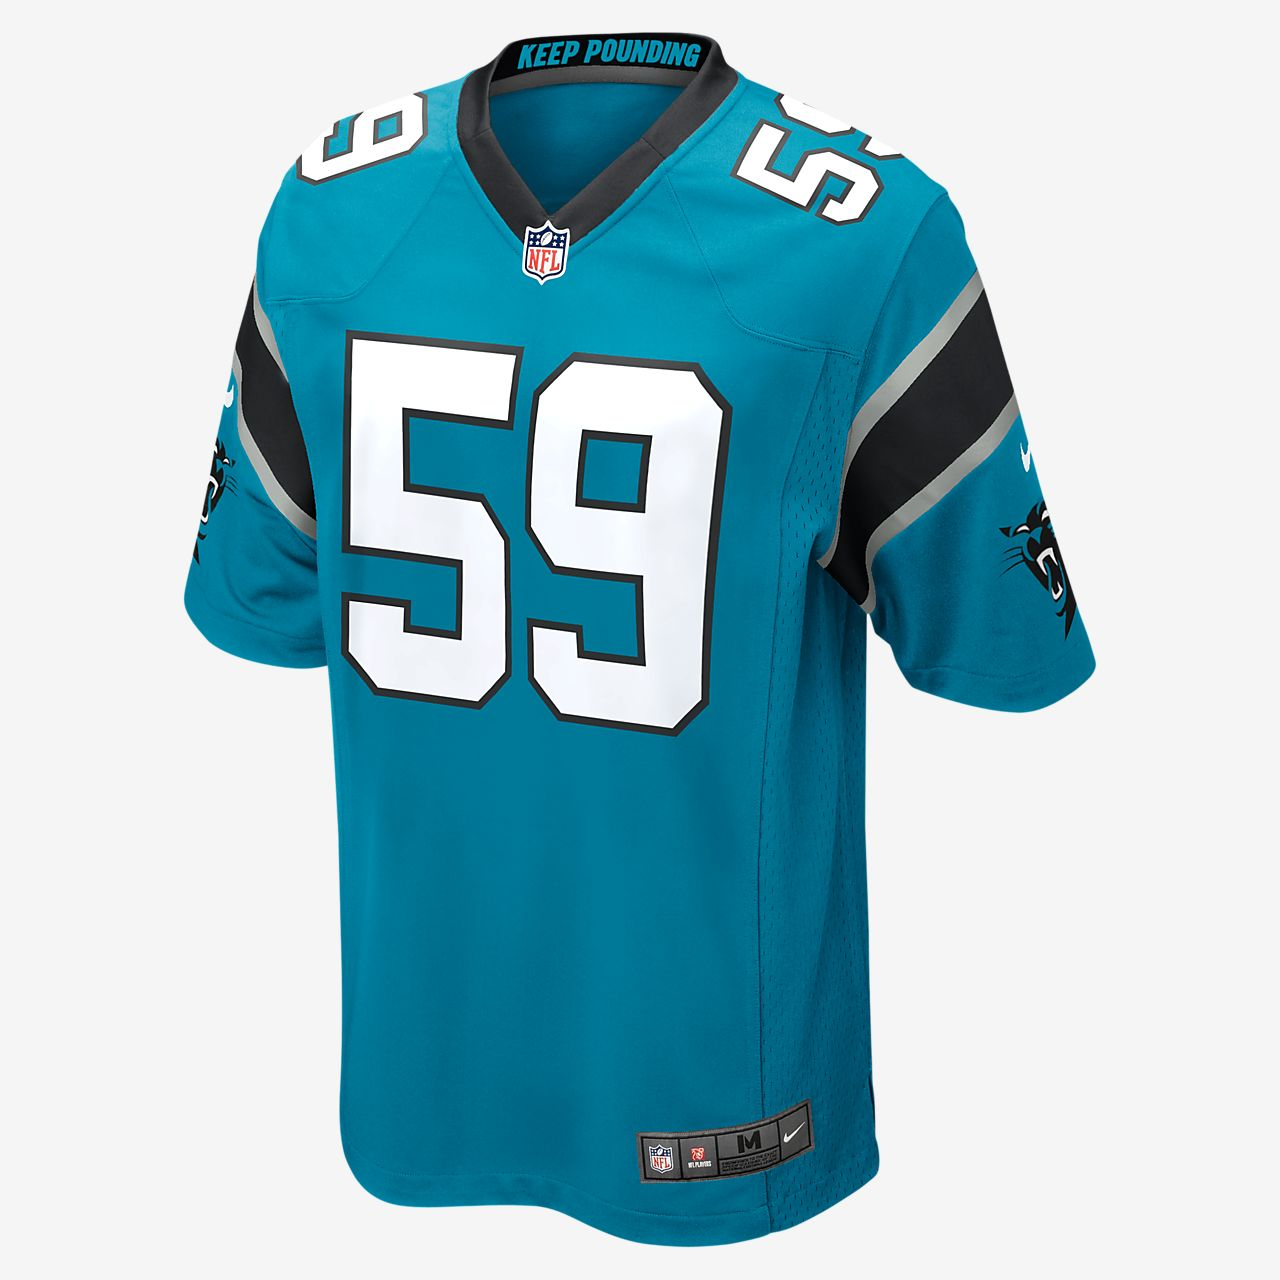 260df4a5f NFL Carolina Panthers (Luke Kuechly) Men s Football Game Jersey ...